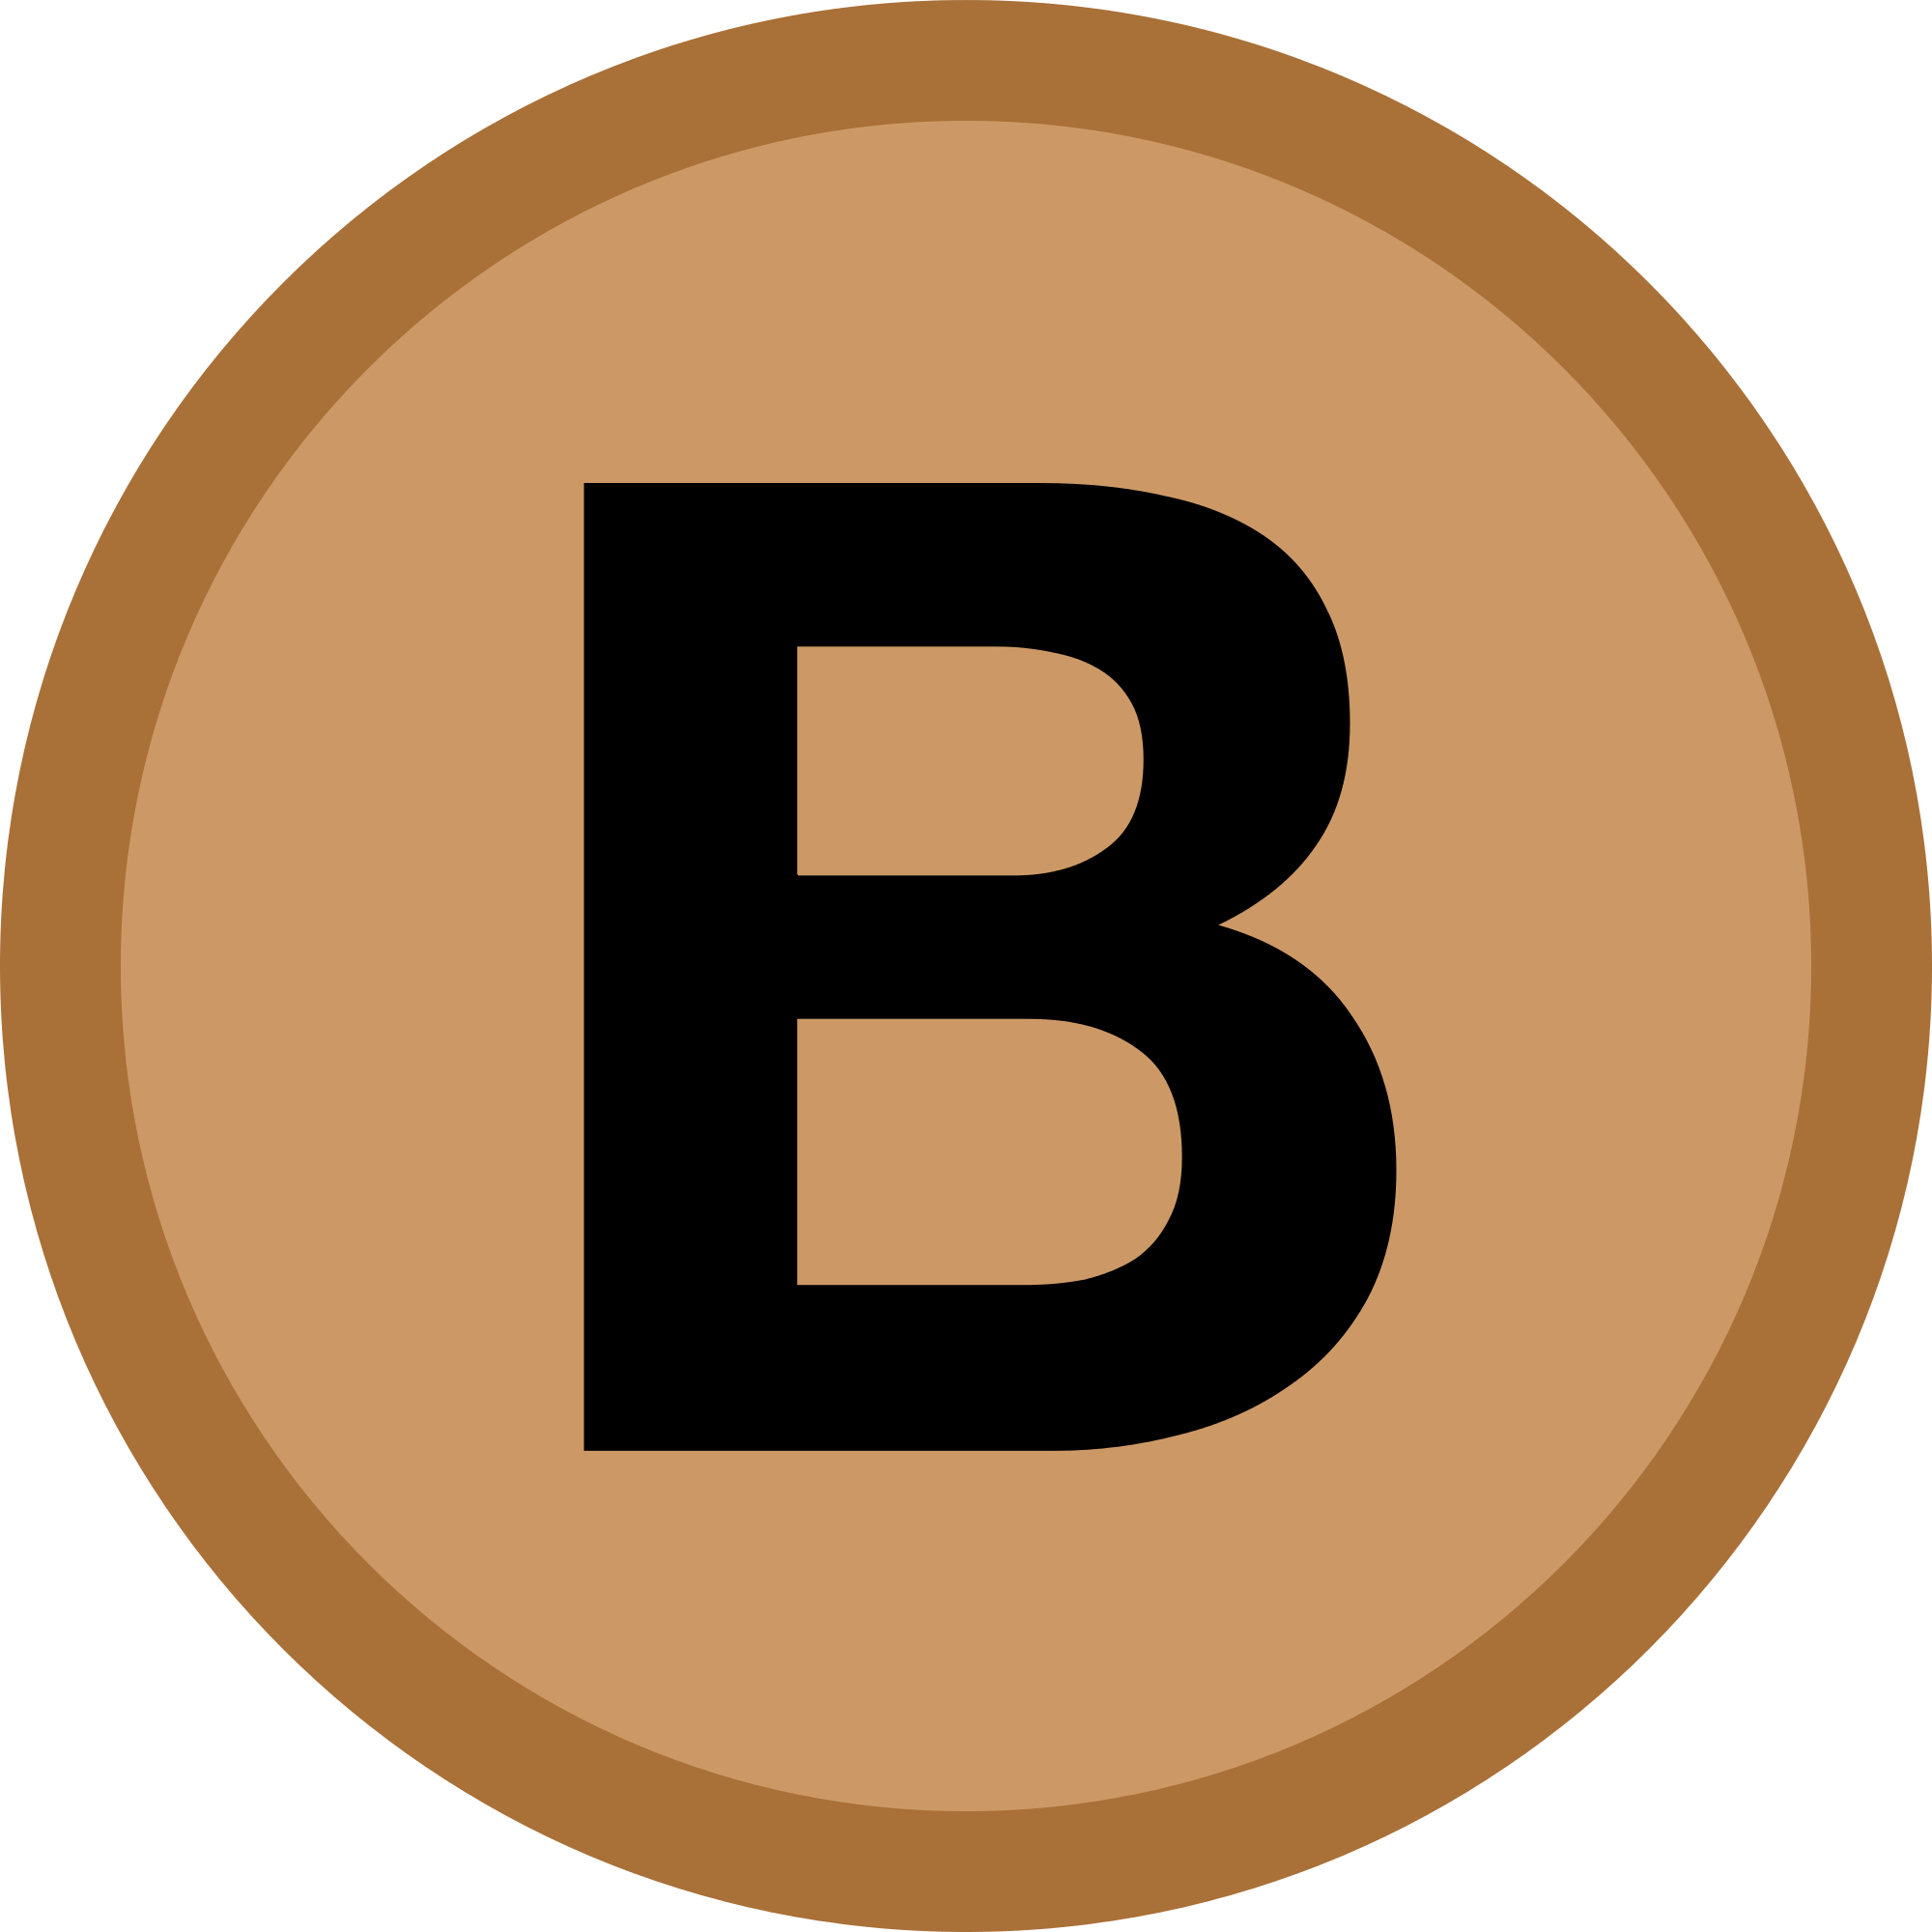 B icon representing the first letter of clients name who wrote the review.